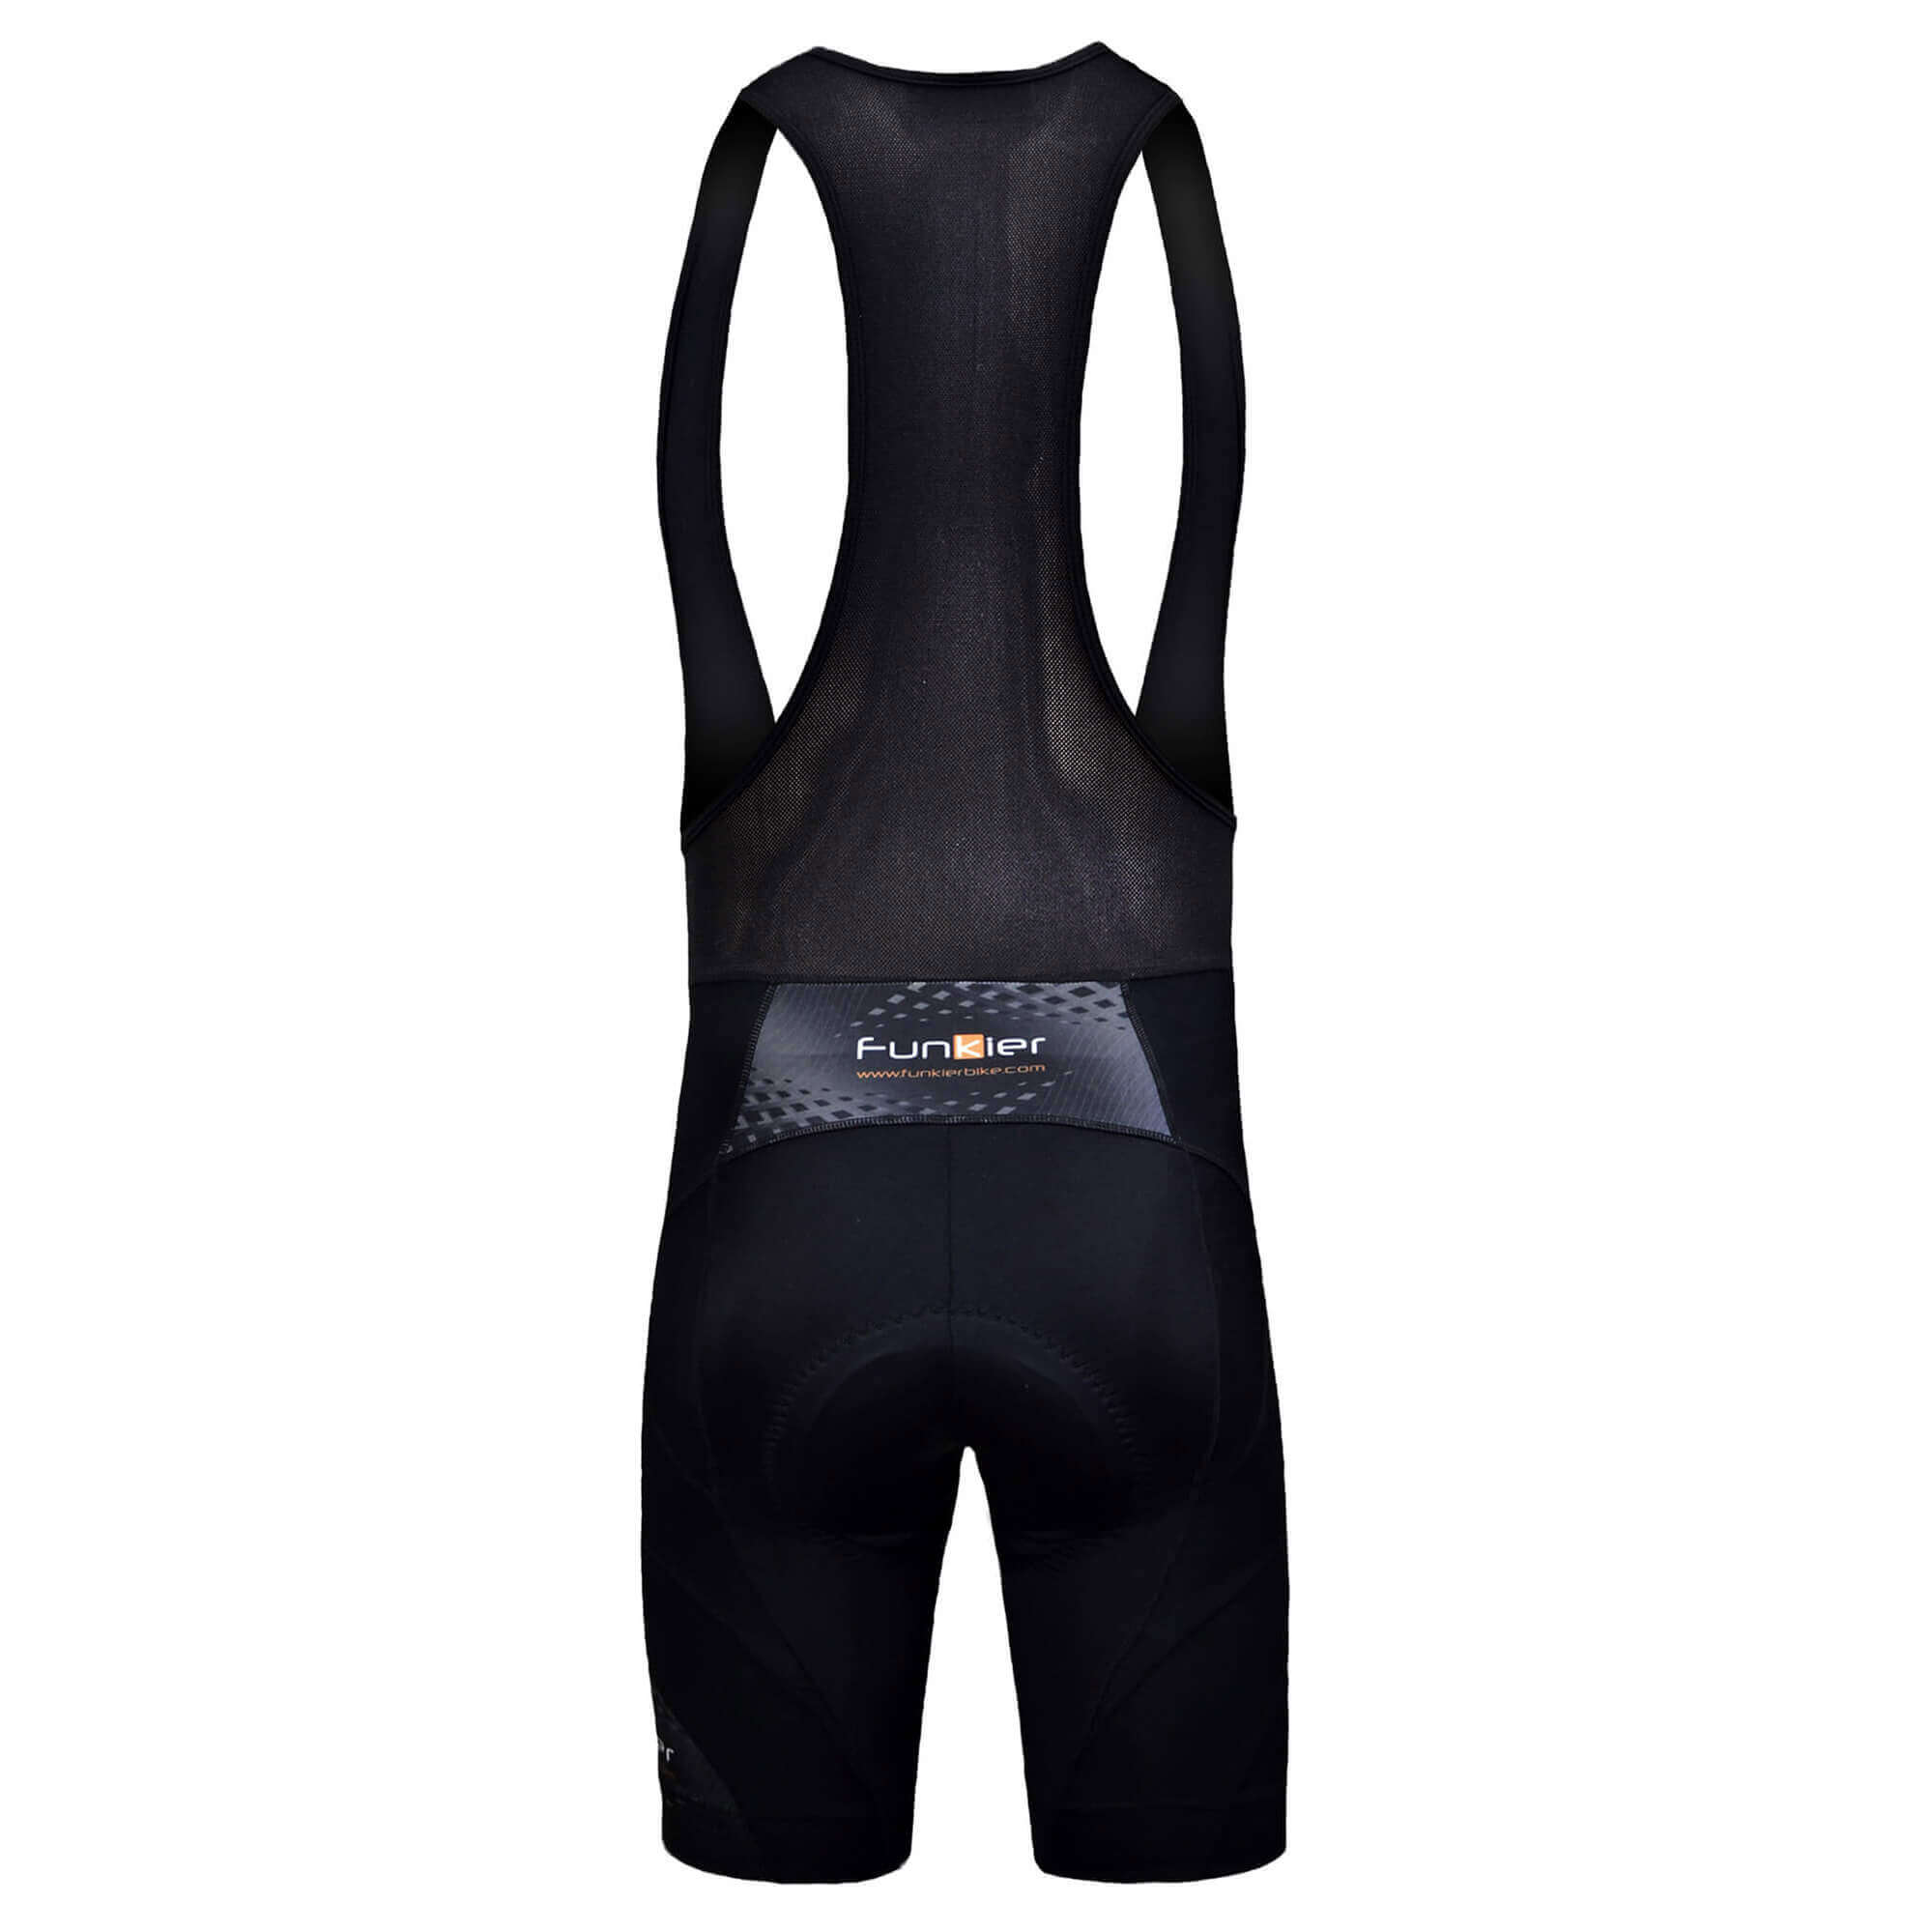 Funkier - High performance cycling apparel at an affordable price. bd46109e0